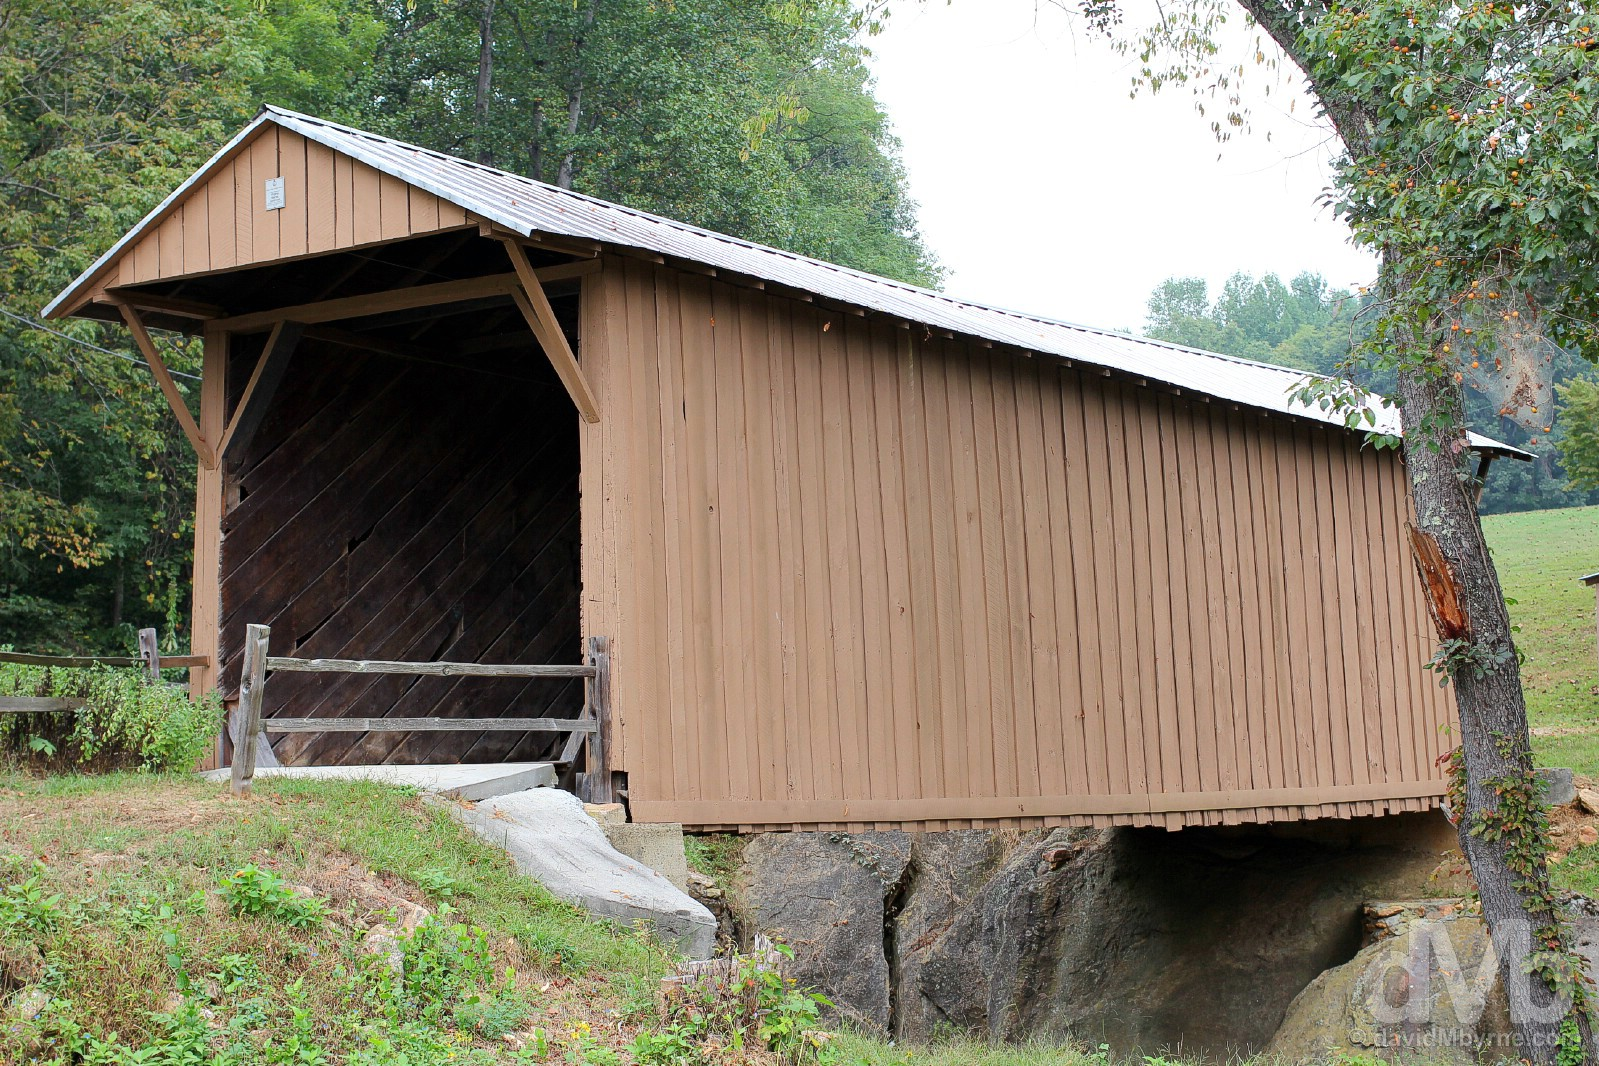 Jacks Creek Covered Bridge, Patrick County, Virginia, USA. September 25, 2016.